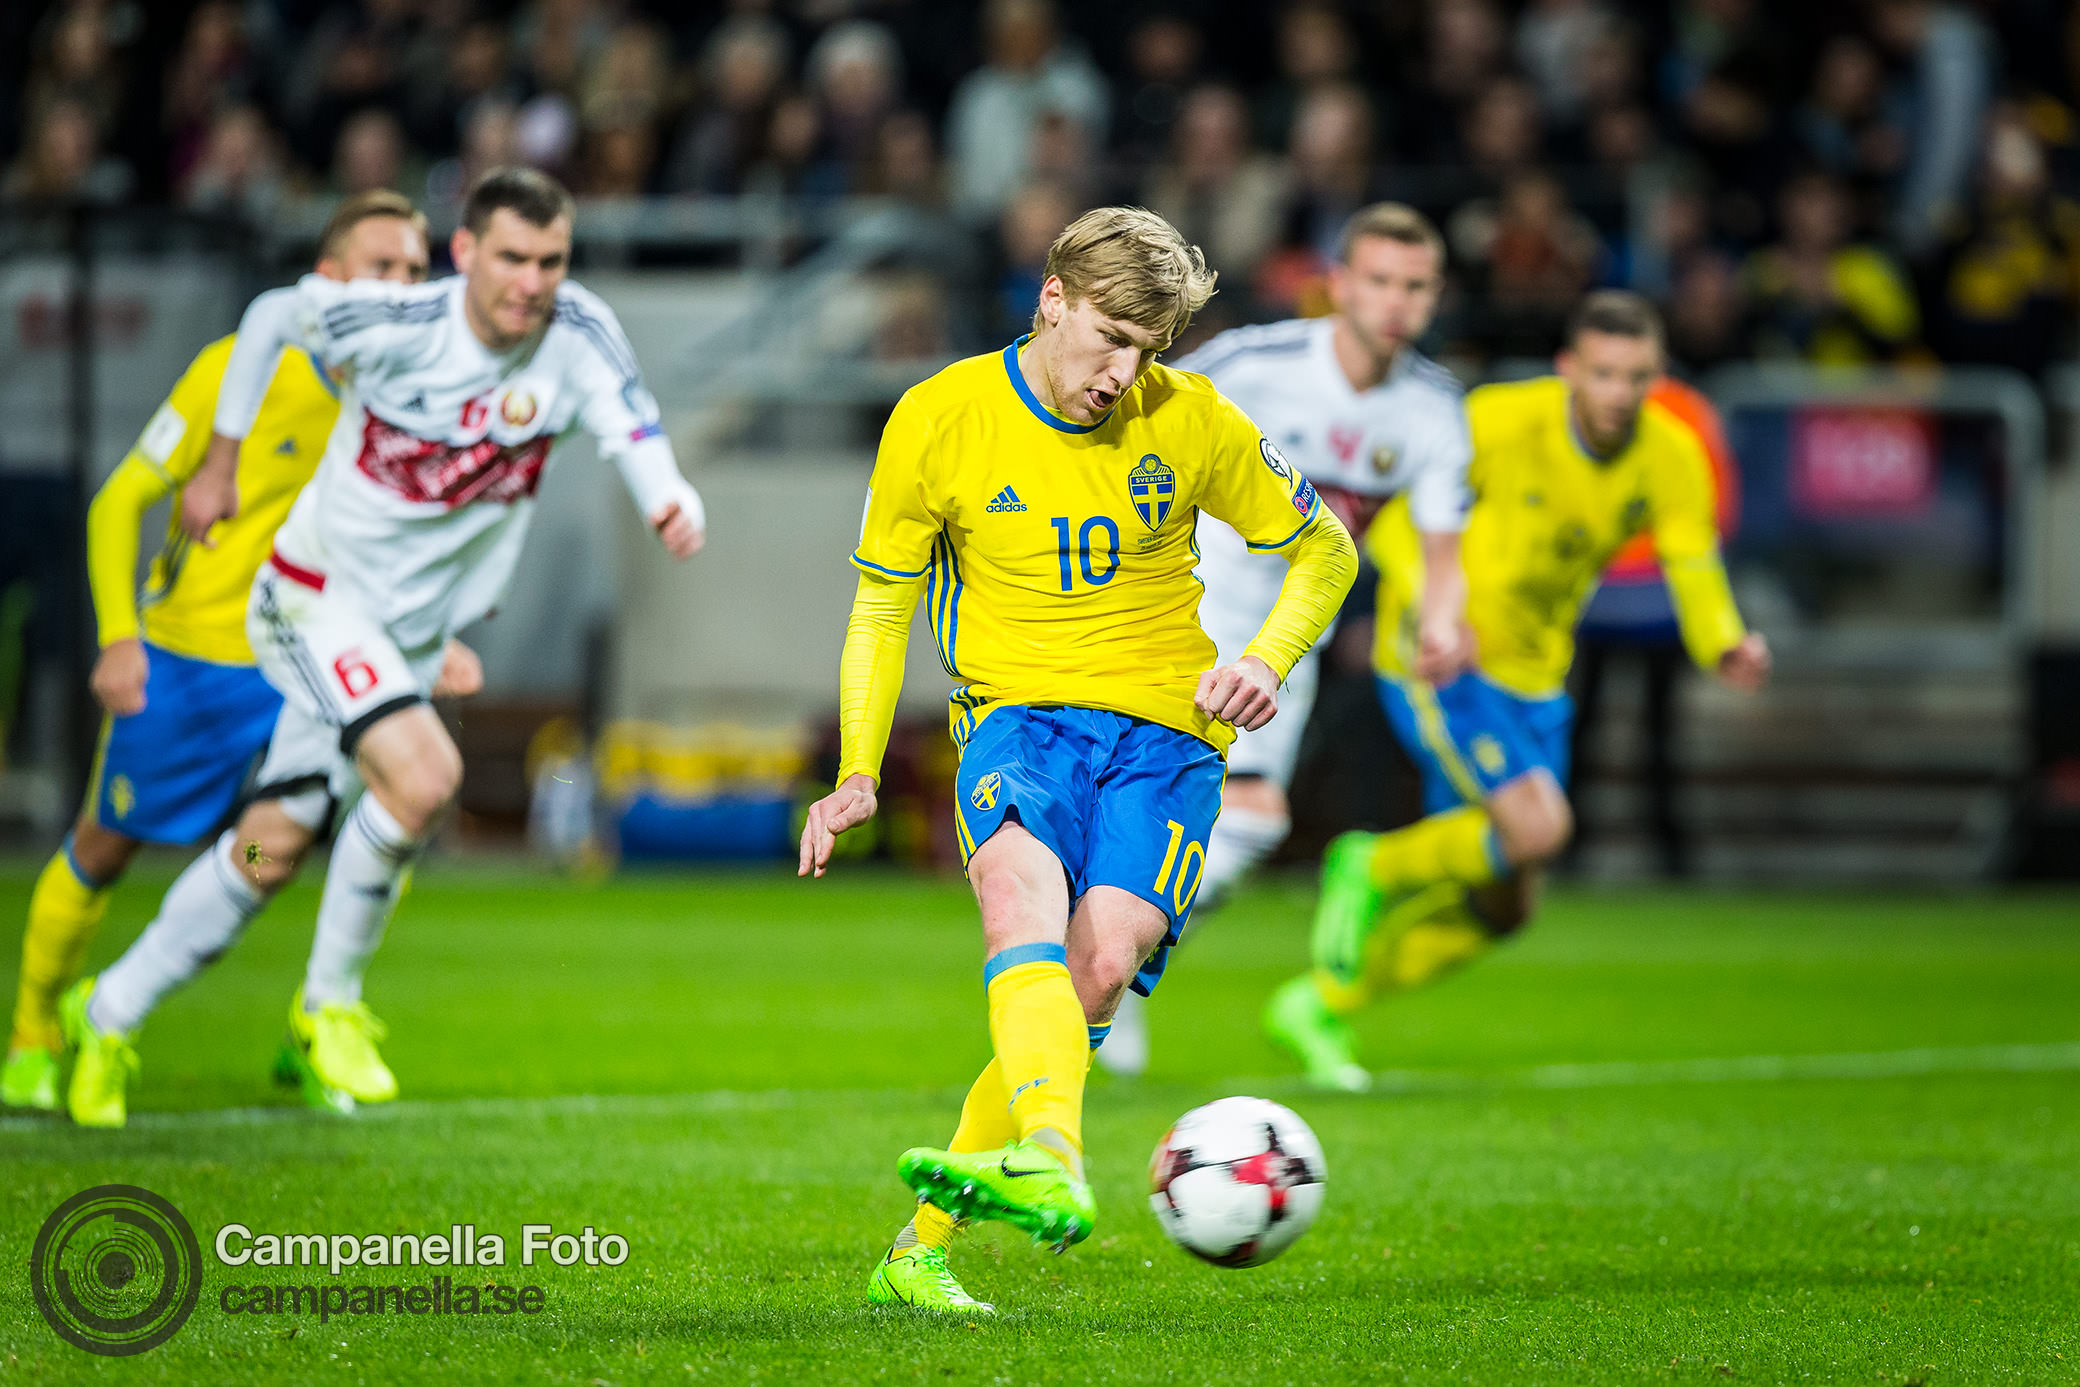 Sweden easily disposes Belarus in 4-0 victory - Michael Campanella Photography